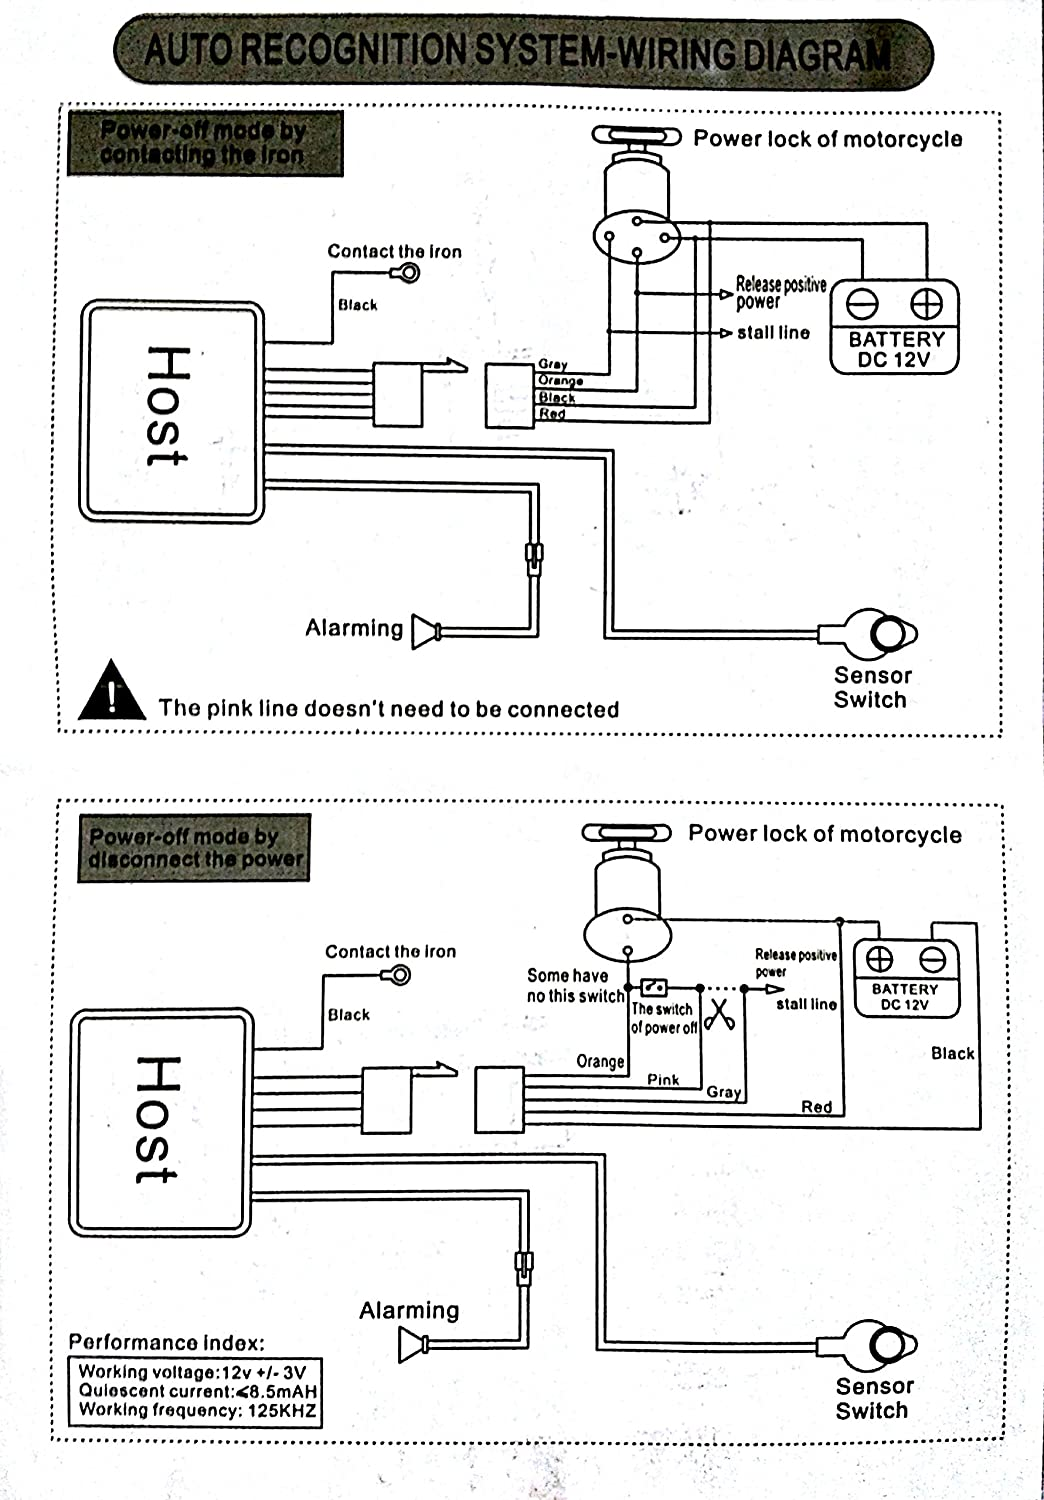 Scooter Alarm Wiring Diagram Schematic Diagrams Mobil Autofy Anti Theft Block And U2022